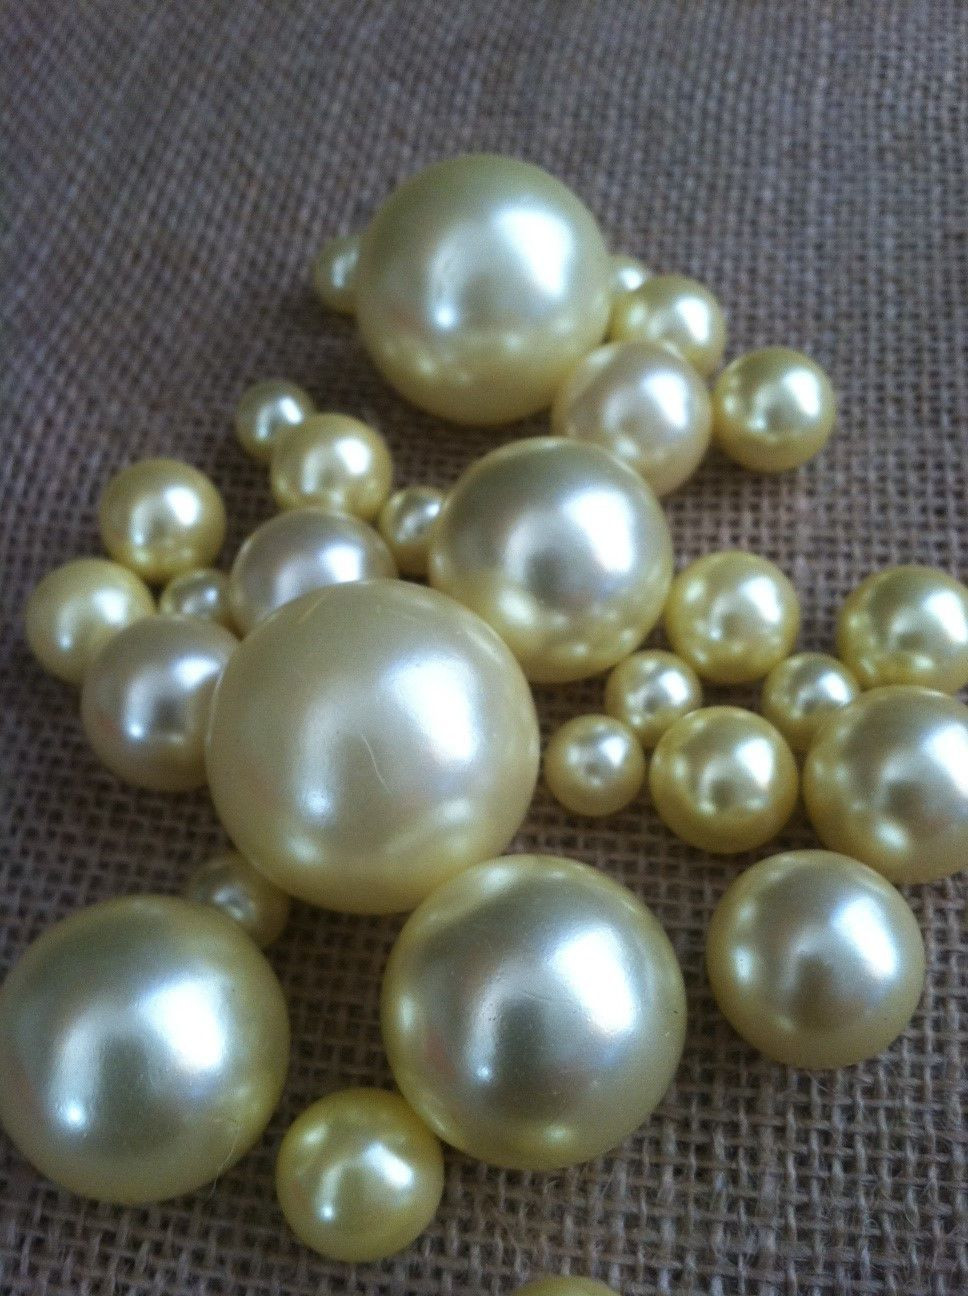 Bulk Vase Fillers Of Light Yellow Pearls for Floating Pearl Centerpieces Jumbo Pearls for Light Yellow Pearls for Floating Pearl Centerpieces Jumbo Pearls Vase Fillers Scatters Confetti